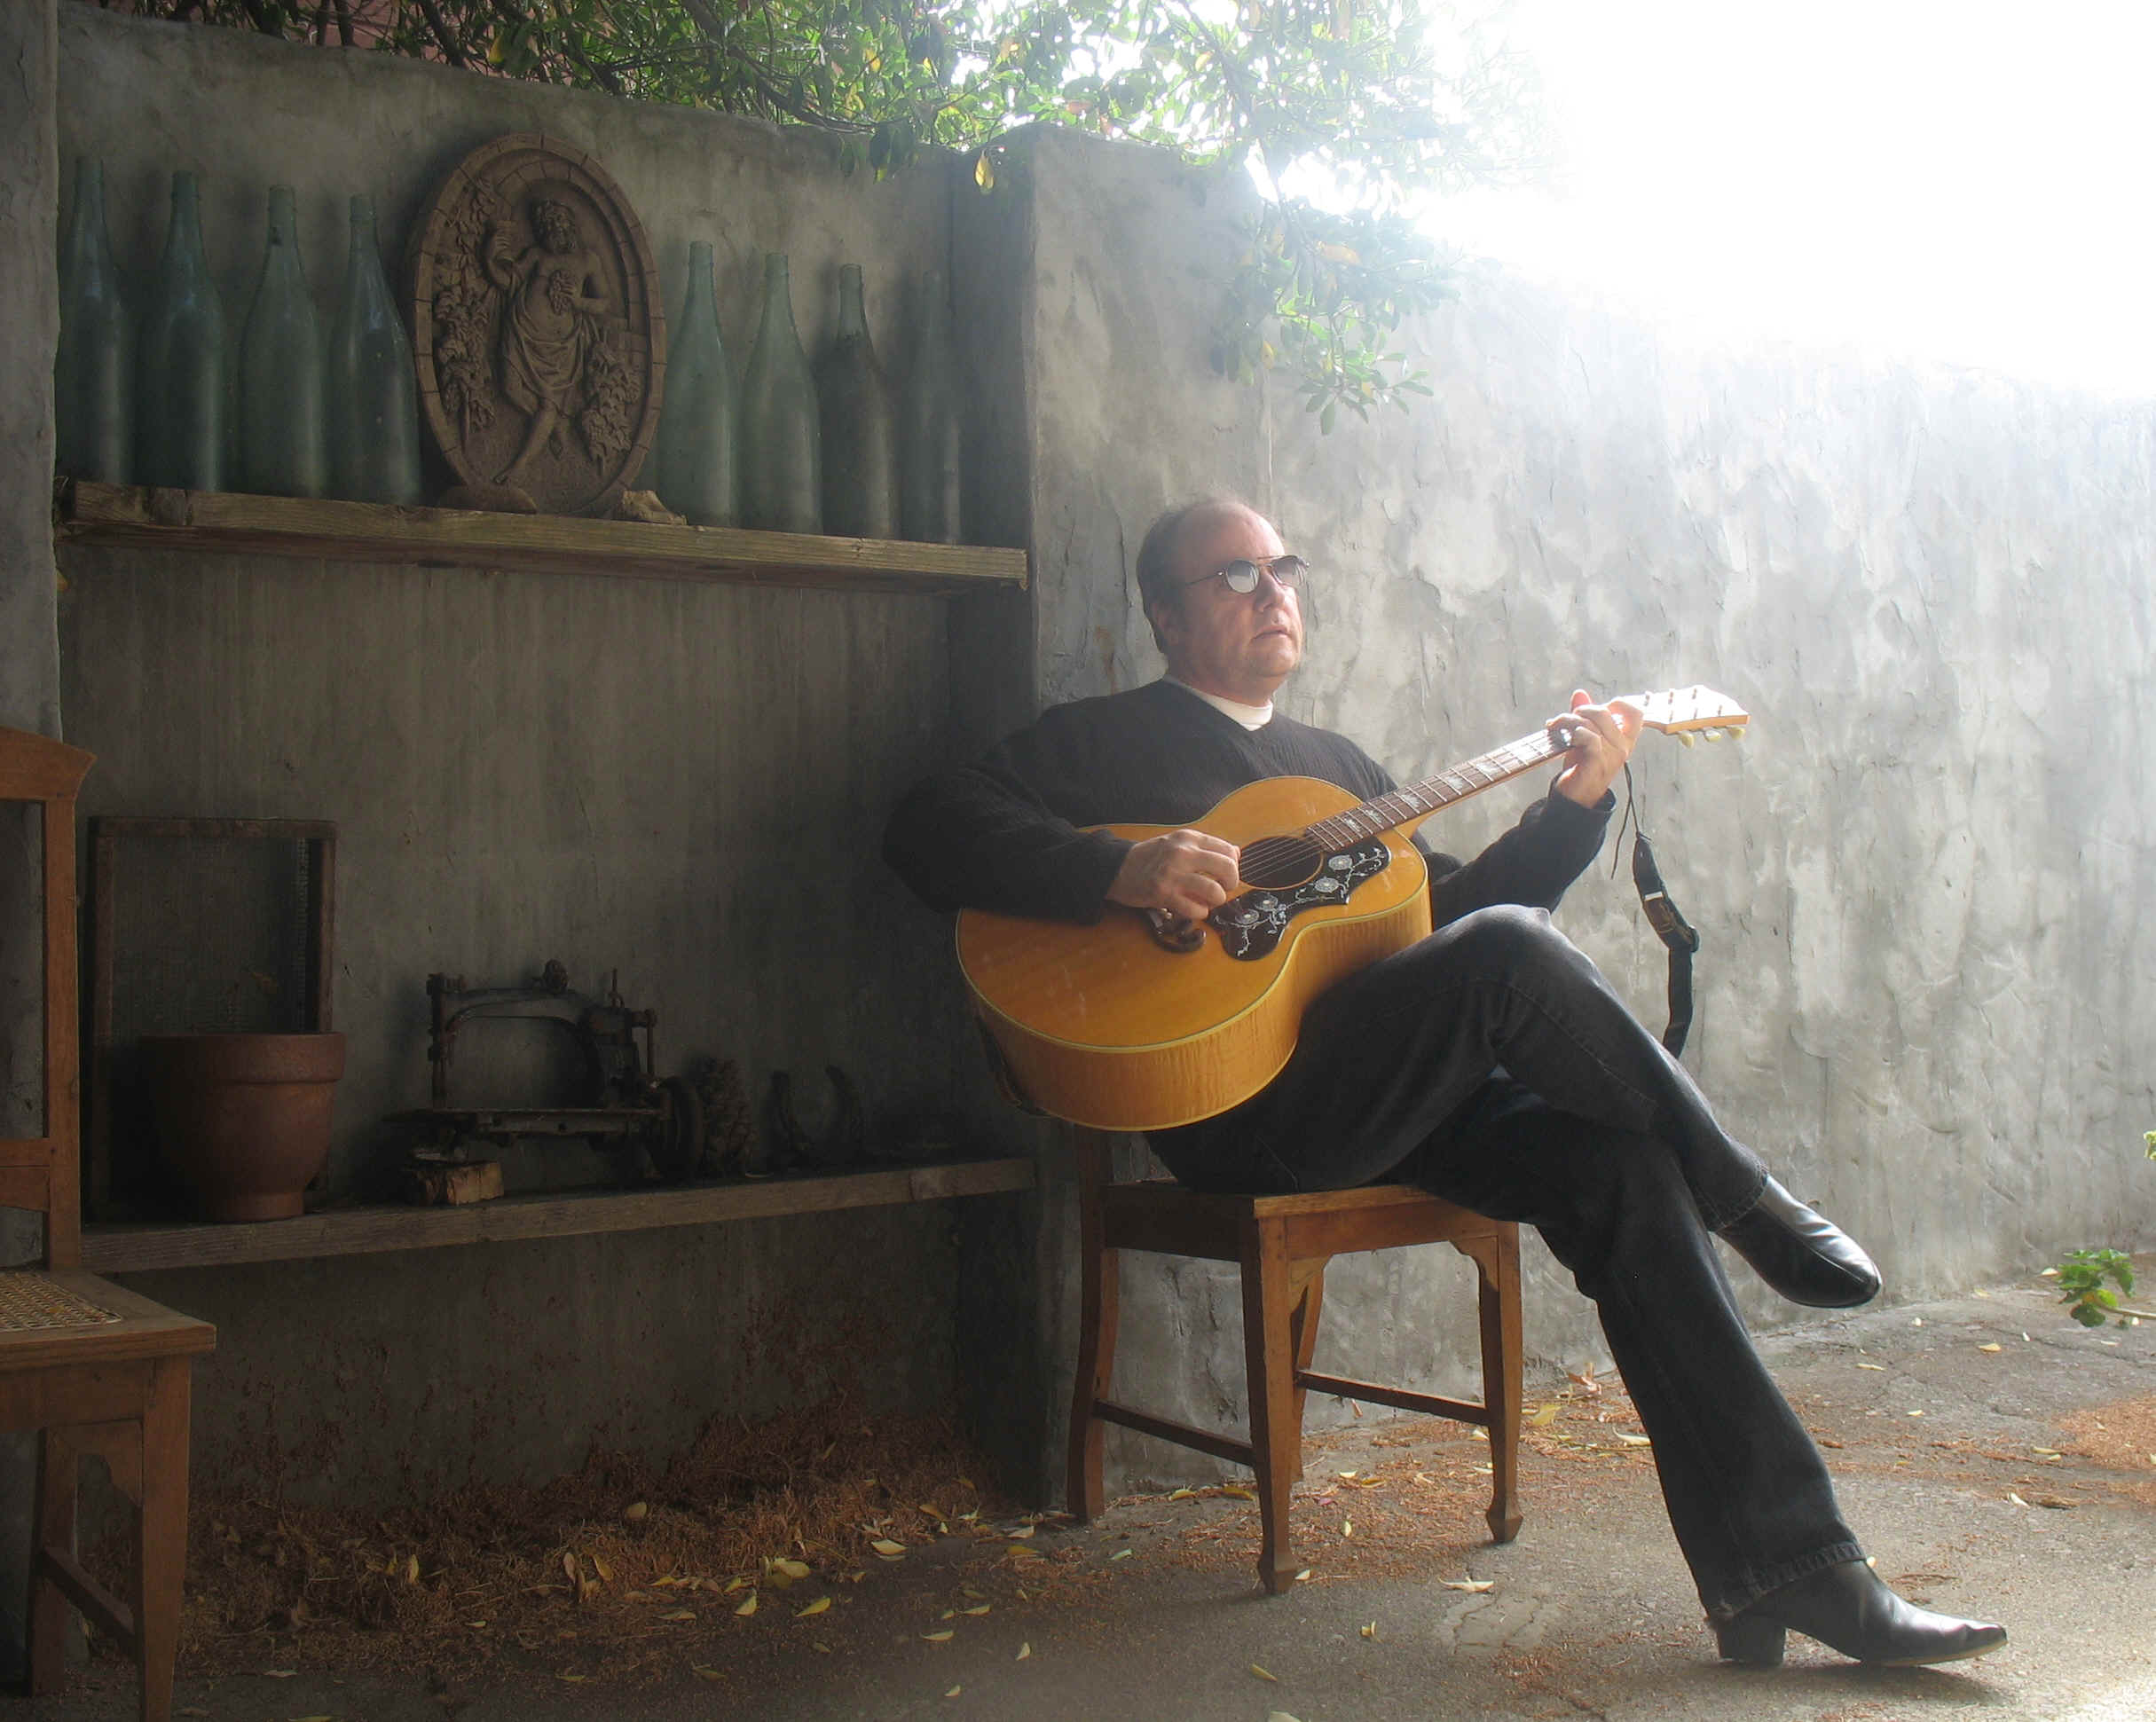 Music of California Novelist Songwriter Rick Alan Rice